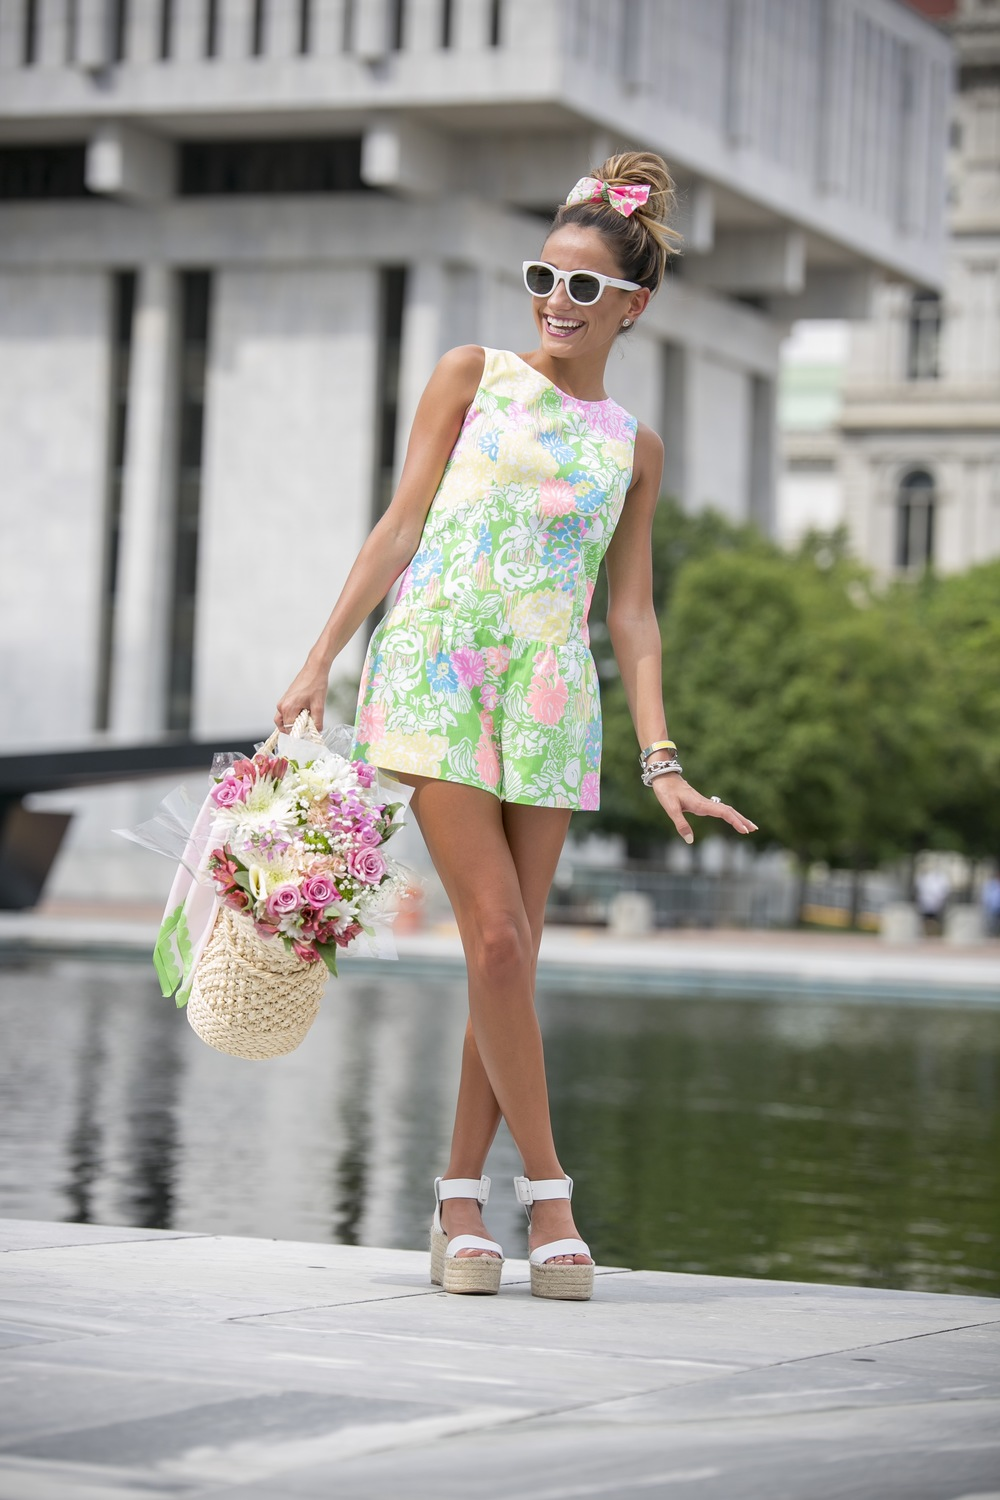 bright colors and patterns in Lilly Pulitzer